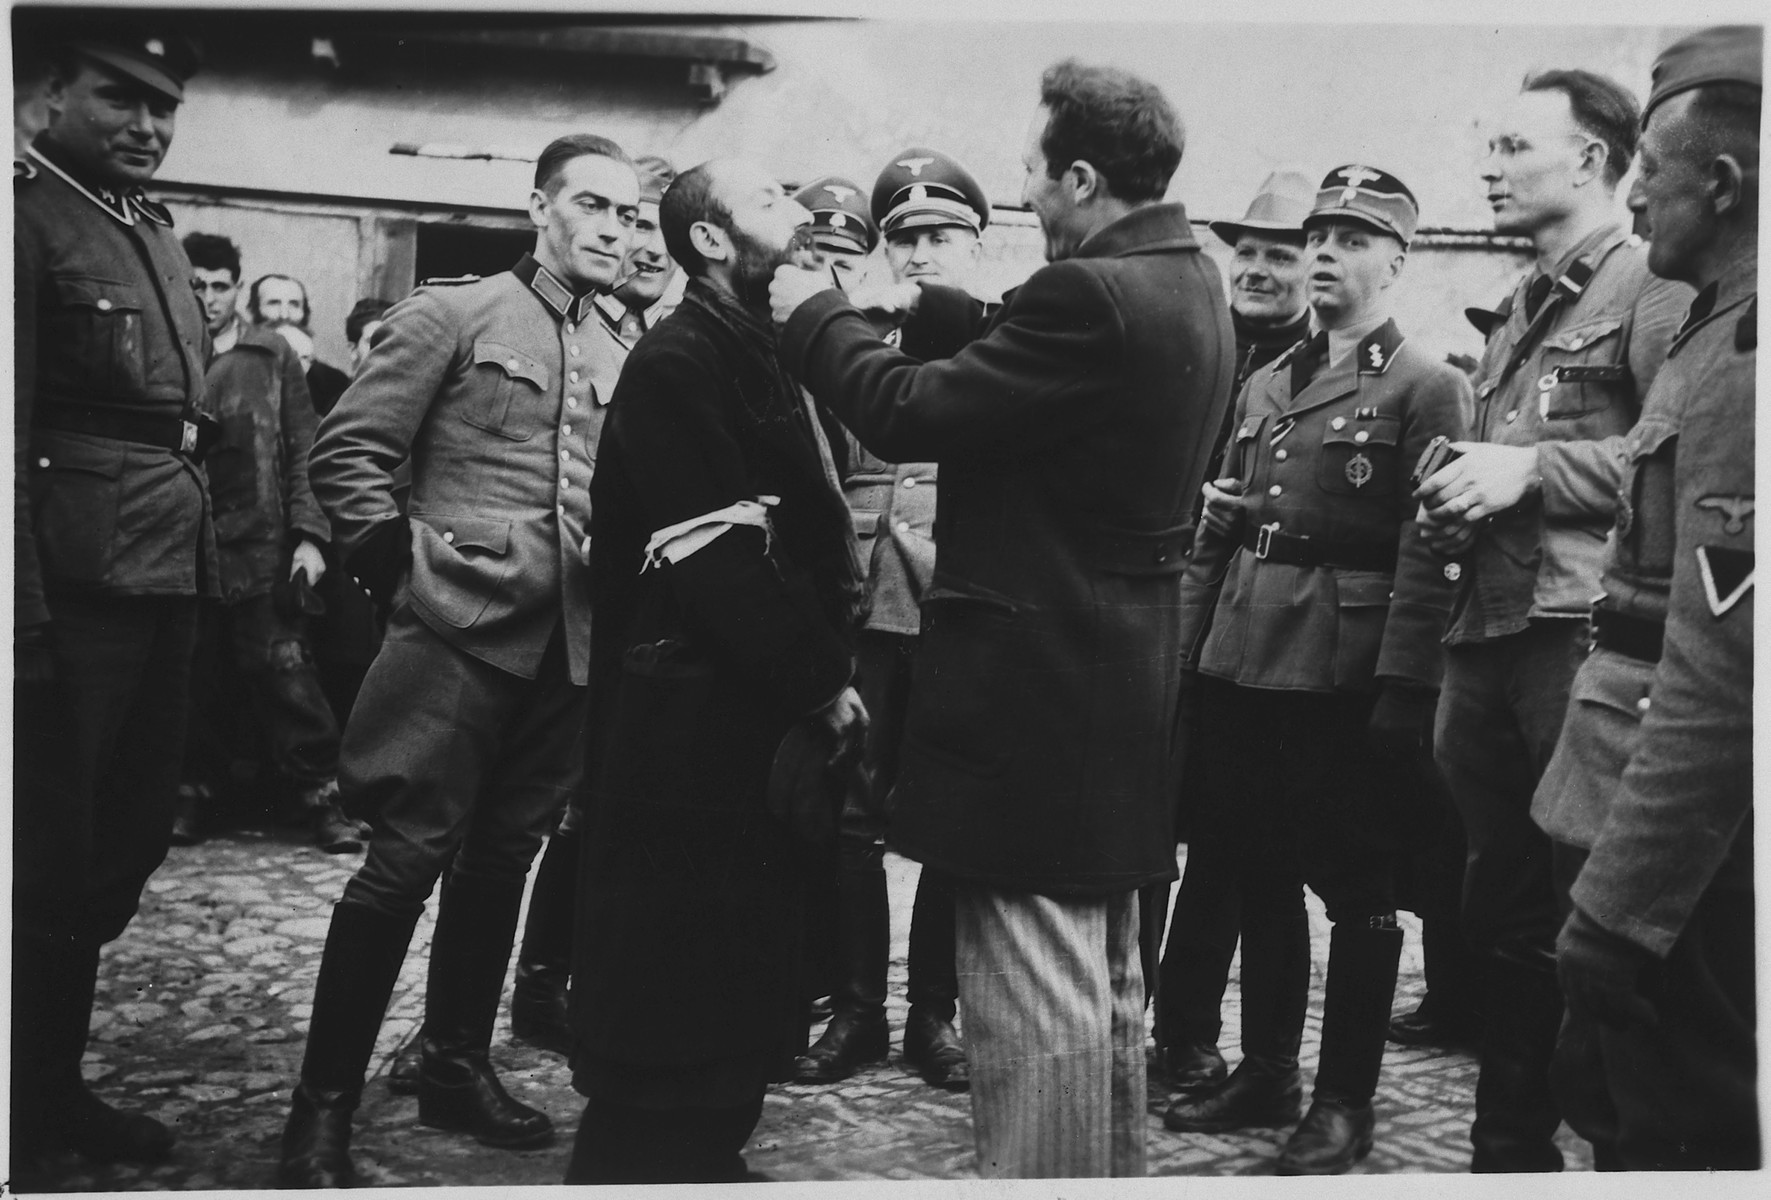 "A Jewish man is forced to shave the beard of a religious Jew while SS men watch in amusement..   The caption of the SS-Archiv says ""Reinrassige Juden angetreten zur Schoenheitspflege in Palinin (?)  Sept. 1941"" (Purebred Jews took up beauty care in Palinin (?) Sept. 1941)."